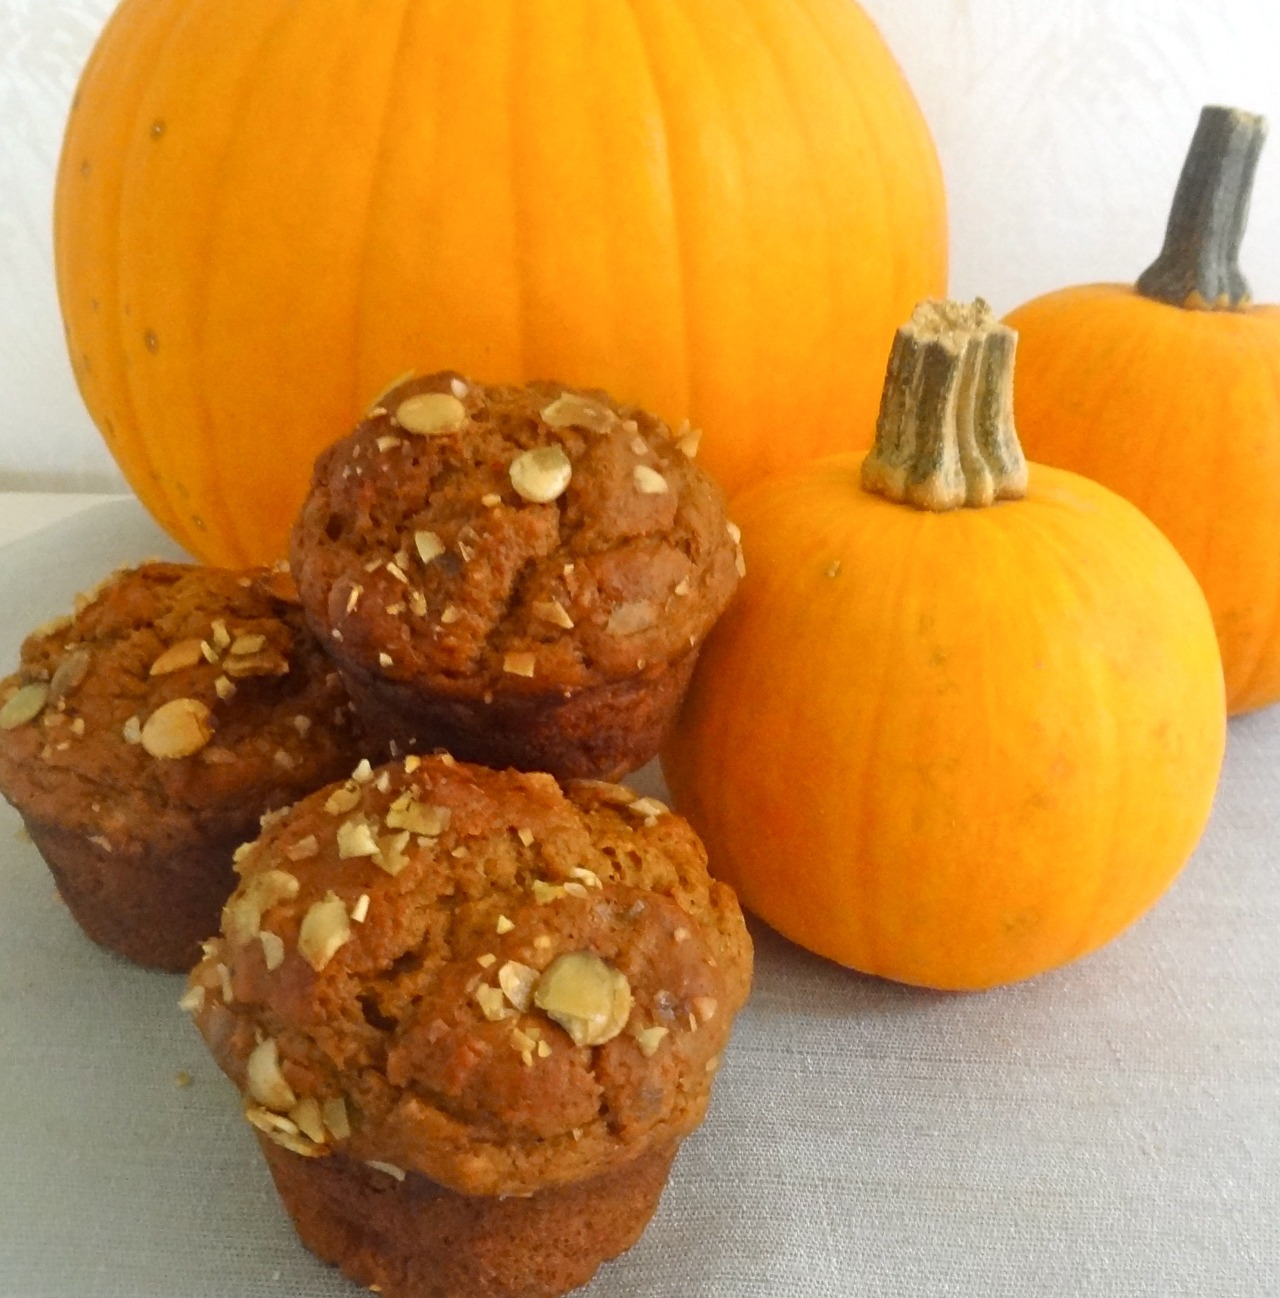 As soon as I see that pumpkins have replaced the corn and tomatoes at the market I start hungering for food that's autumn-like. Mostly pumpkin bread and muffins to snack on when I need a little something in the late afternoon with my last cup of coffee for the day.  I don't make pumpkin muffins as often as I do banana bread, but almost. This is my latest version, which has kefir because I happened to have some in the fridge. But buttermilk is fine too.  Reheat leftovers in a toaster oven for a few minutes if you need a quick breakfast.  Btw, I used to bake and mash the pumpkin insides to get the puree, but most of the time I use canned pumpkin or squash. NOT pumpkin pie mix. I want to mix in the spices of my choice, not theirs.   Pumpkin Muffins with Kefir and Pumpkin Seeds   3  tablespoons butter 1-3/4 cups flour 1 teaspoon baking soda 1/2 teaspoon baking powder 1/2 teaspoon salt 1 teaspoon cinnamon 1 teaspoon freshly grated nutmeg 1/8 teaspoon ground cloves 2 tablespoons brown sugar 1 cup mashed pumpkin (not pumpkin pie mix) 3/4 cup kefir 1/4 cup molasses 1 large egg 2-3 tablespoons crushed pumpkin seeds     Preheat the oven to 400 degrees. Lightly grease 9 muffin tin cups. Melt the butter and set it aside to cool. Sift together the flour, baking soda, baking powder, salt, cinnamon, nutmeg, cloves and brown sugar. In a separate bowl, combine the pumpkin, kefir, molasses, egg and cooled, melted butter. Add the liquid ingredients to the dry ones and mix only long enough to combine. Spoon the batter into the prepared muffin tin cups. Scatter the pumpkin seeds evenly on top of each muffin. Bake for 22-25 minutes or until a cake tester inserted into the center comes out clean. Makes 9